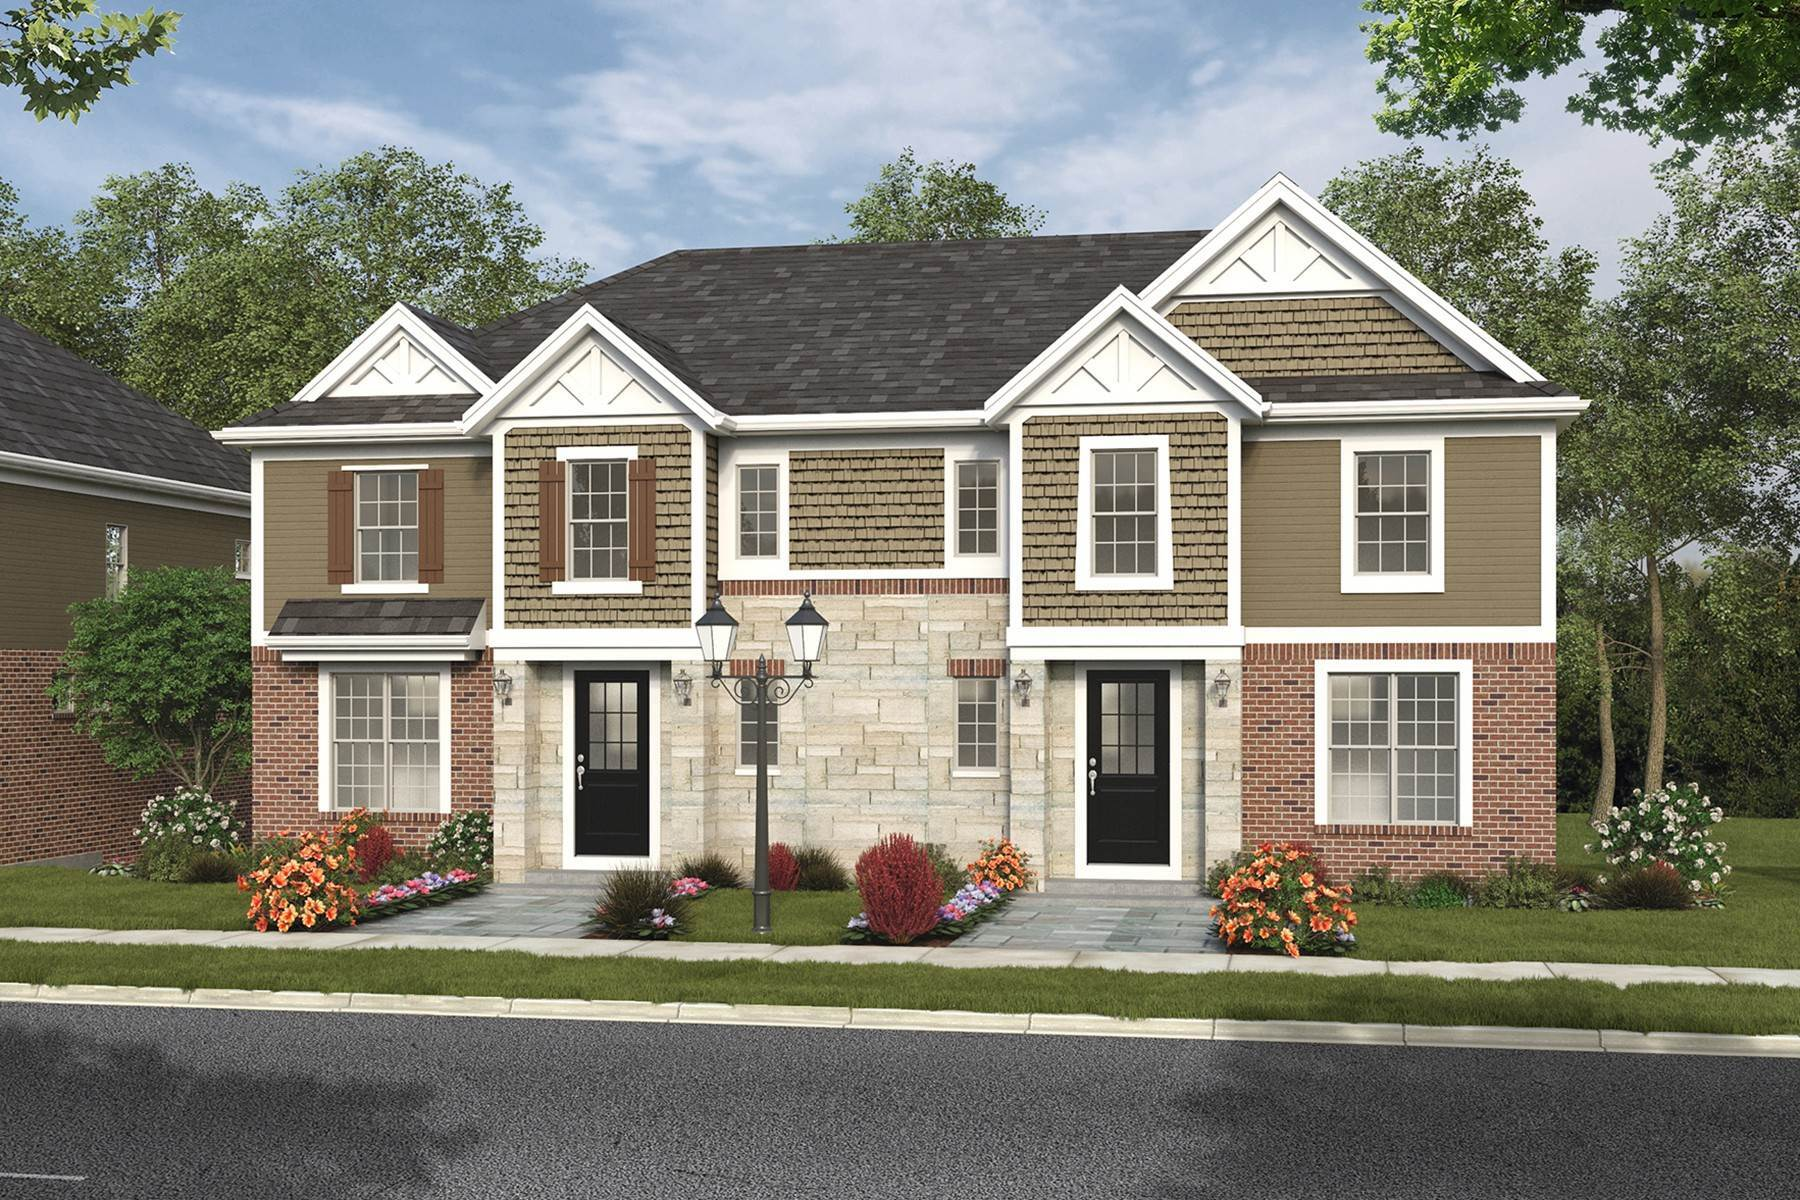 townhouses for Sale at Premiere Lifestyle Community built by Cedar Hill Custom Homes 9324 Old Plainfield Road Blue Ash, Ohio 45236 United States